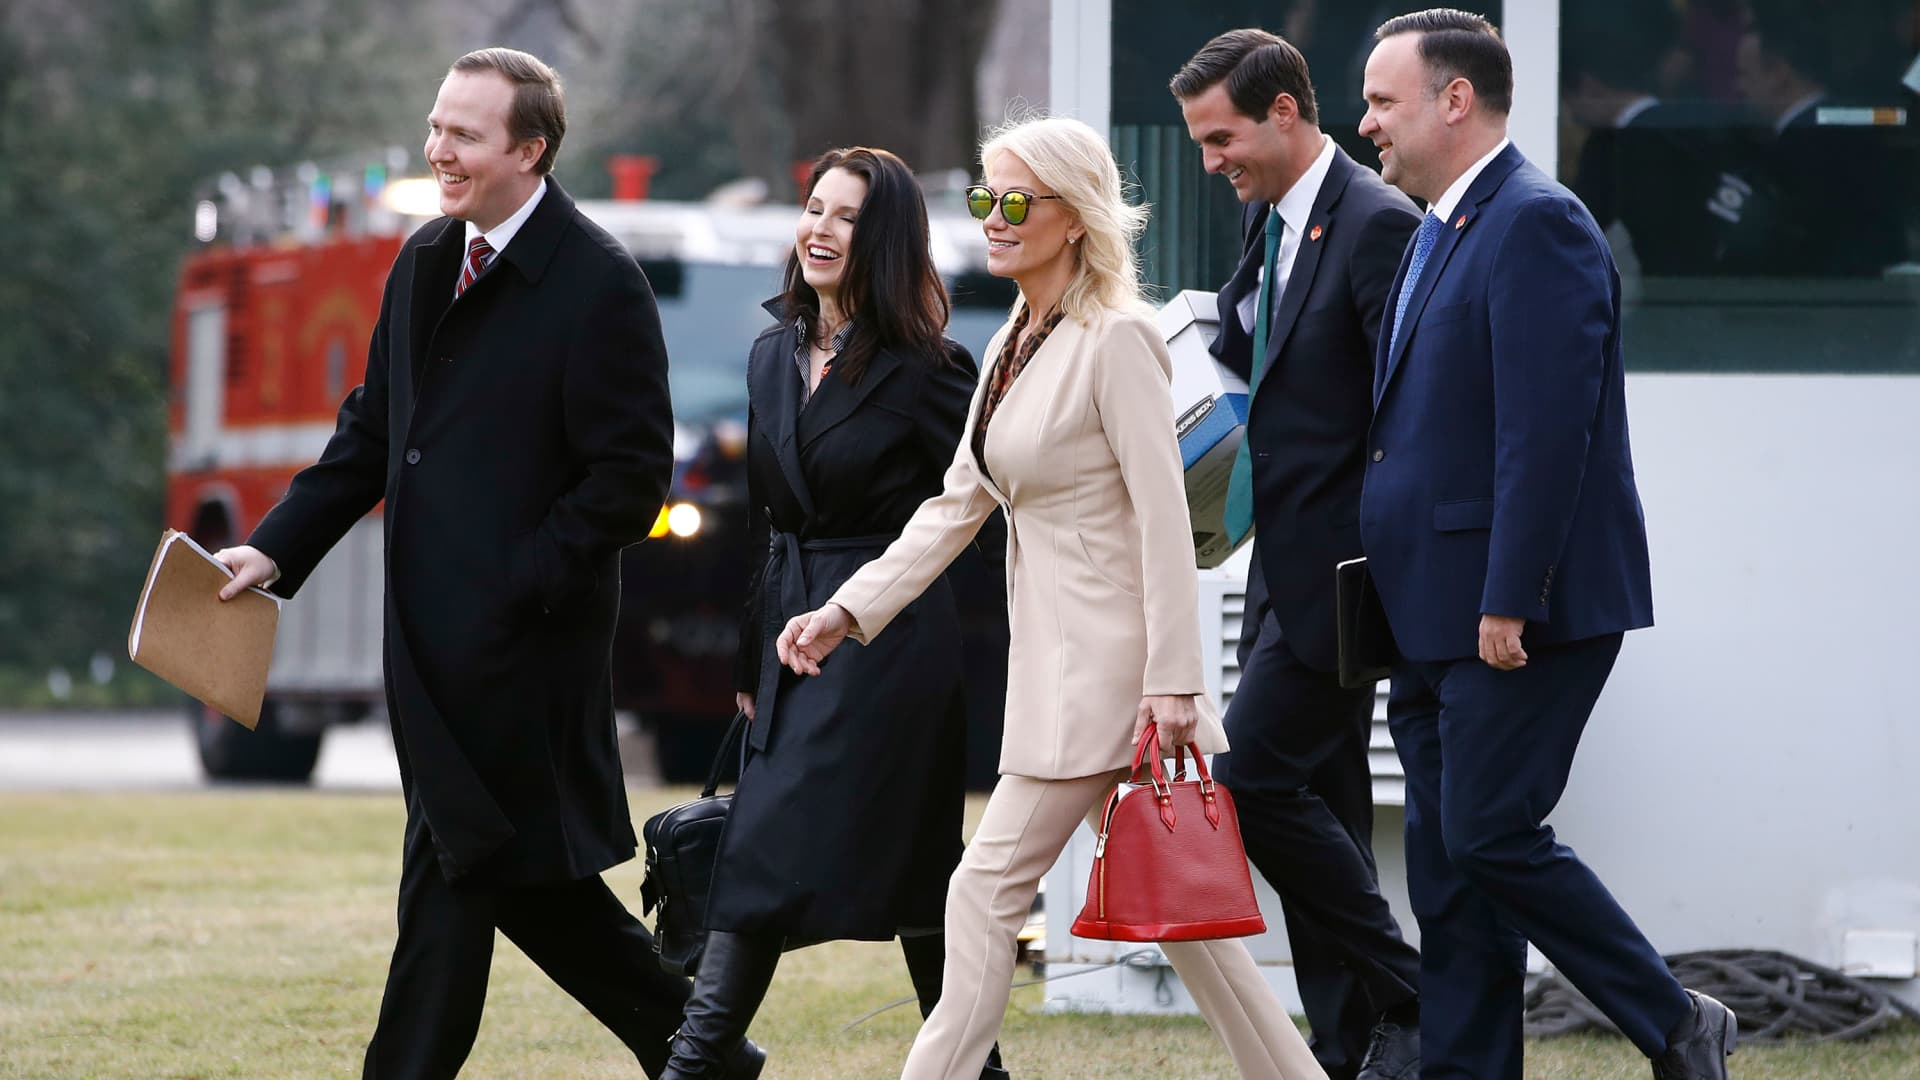 White House Political Director Brian Jack, from left, Deputy Staff Secretery Catherine Keller, Counselor to the President Kellyanne Conway, aide John McEntee and White House Social Media Director Dan Scavino walk across the South Lawn of the White House in Washington, Thursday, Jan. 23, 2020.